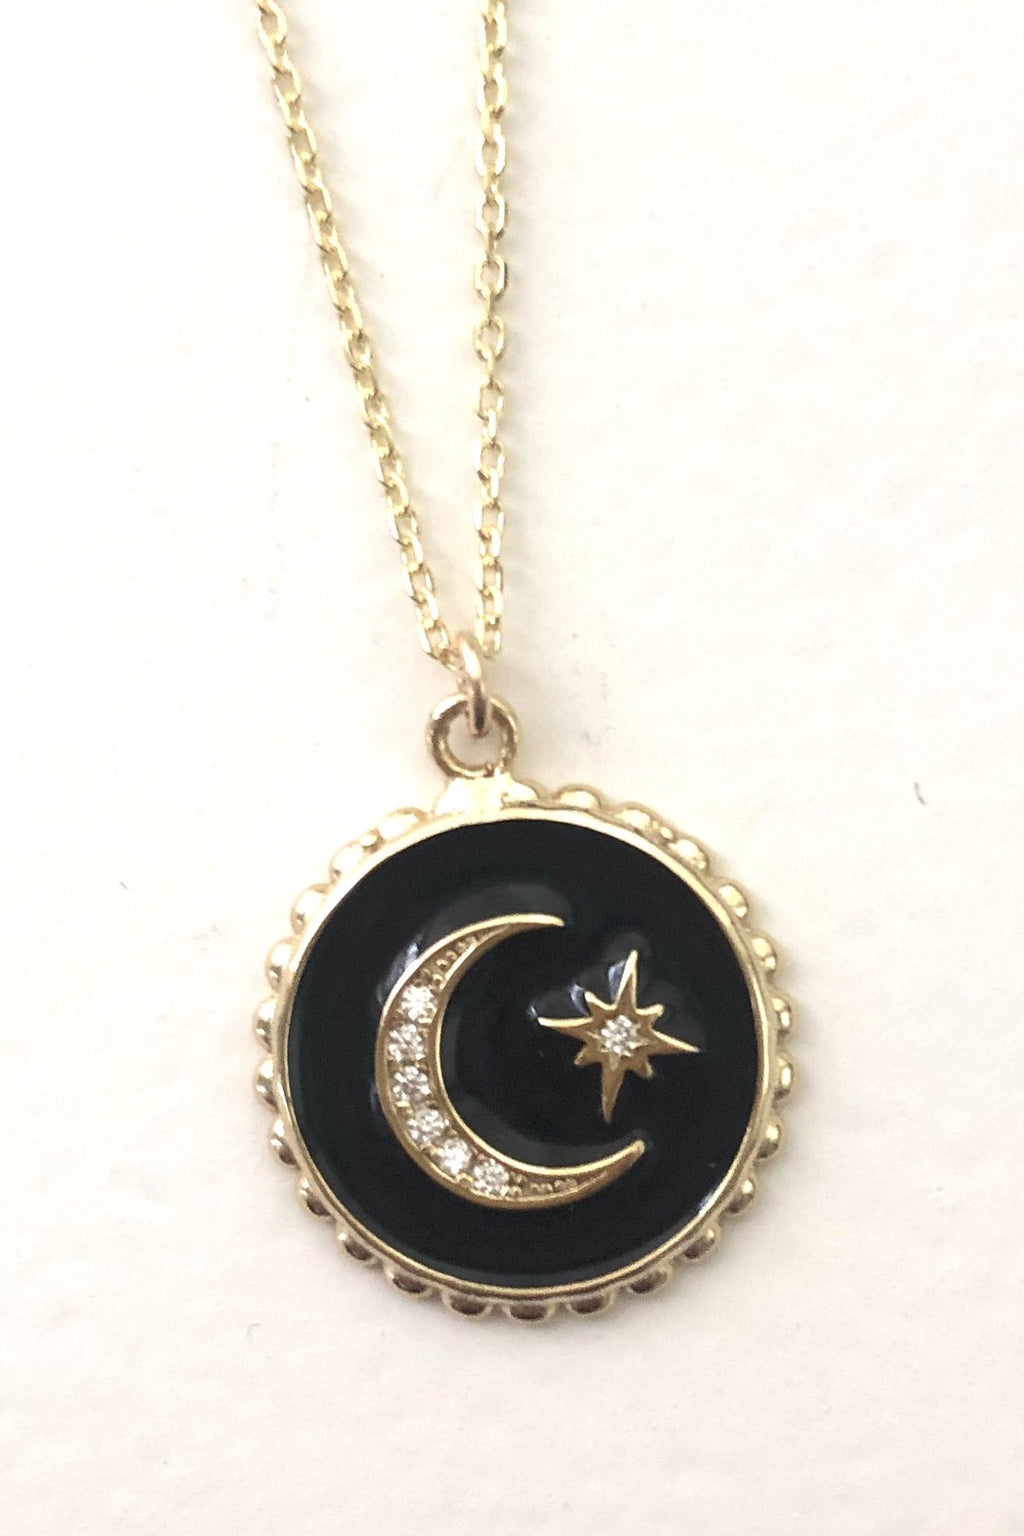 Moonlight Dainty Necklace